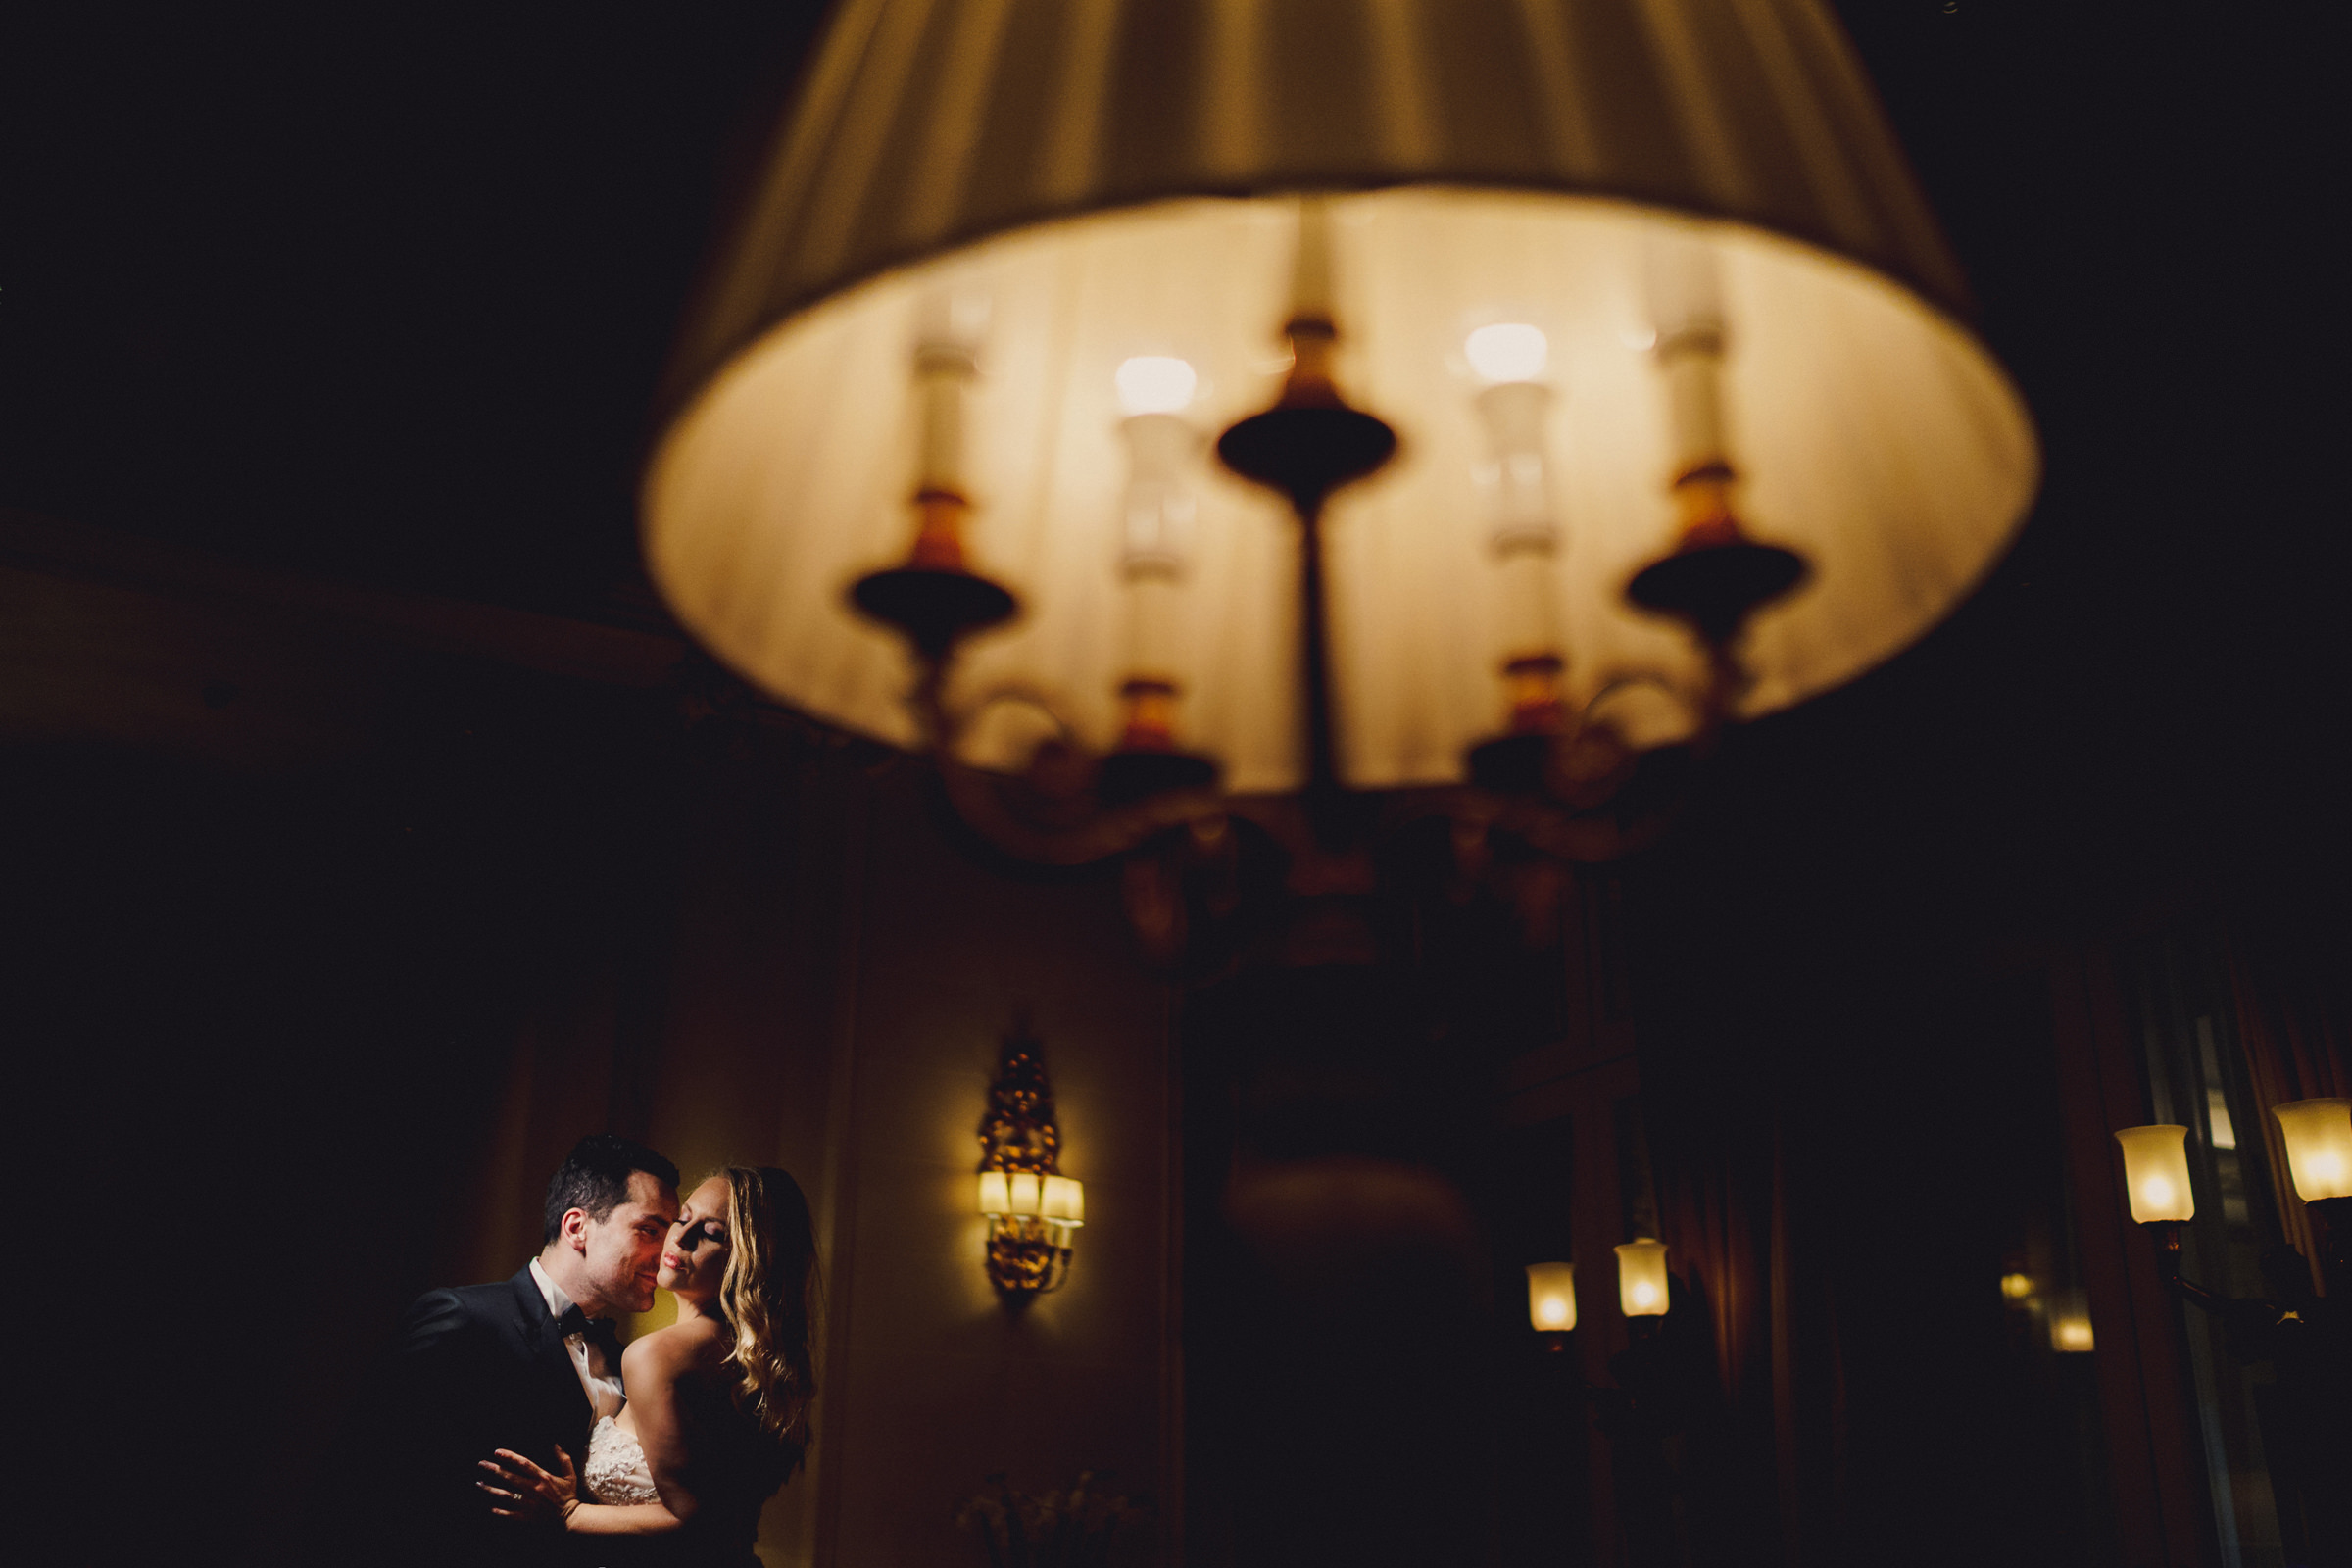 Groom kisses bride by lamplight - photo by MIKI Studios